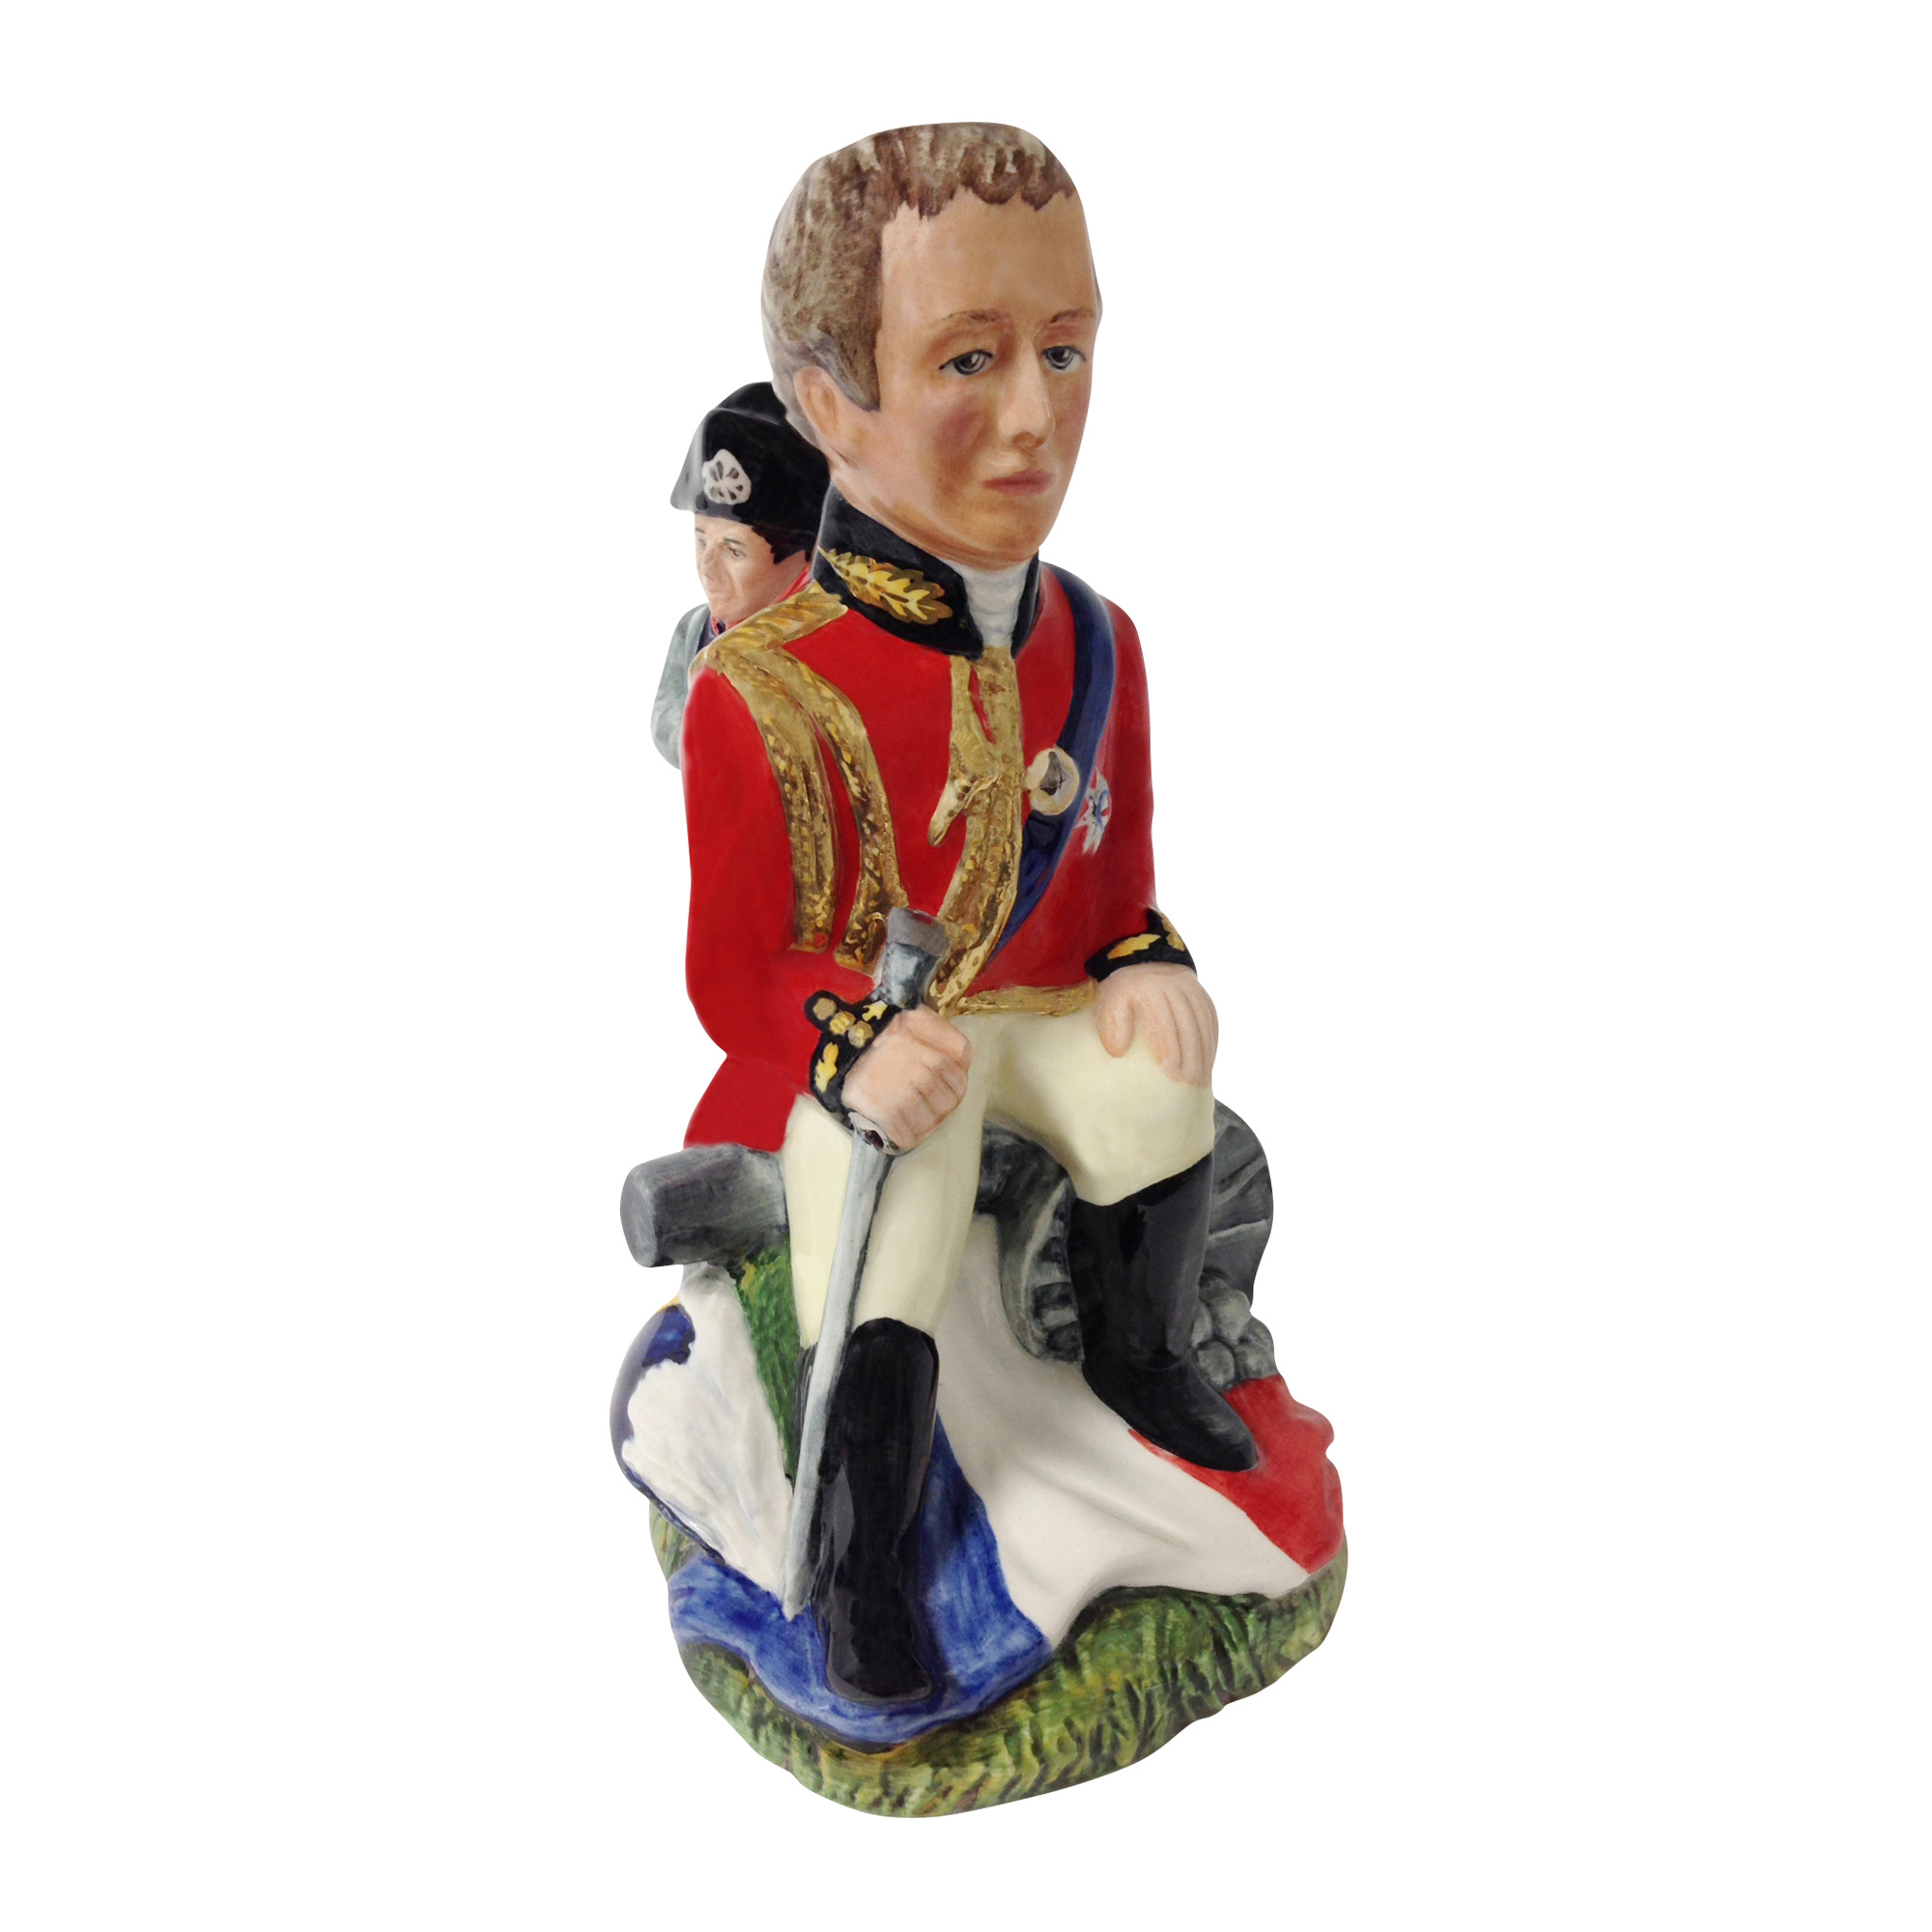 Duke of Wellington Toby Jug - Bairstow Manor Collectables Toby Jug